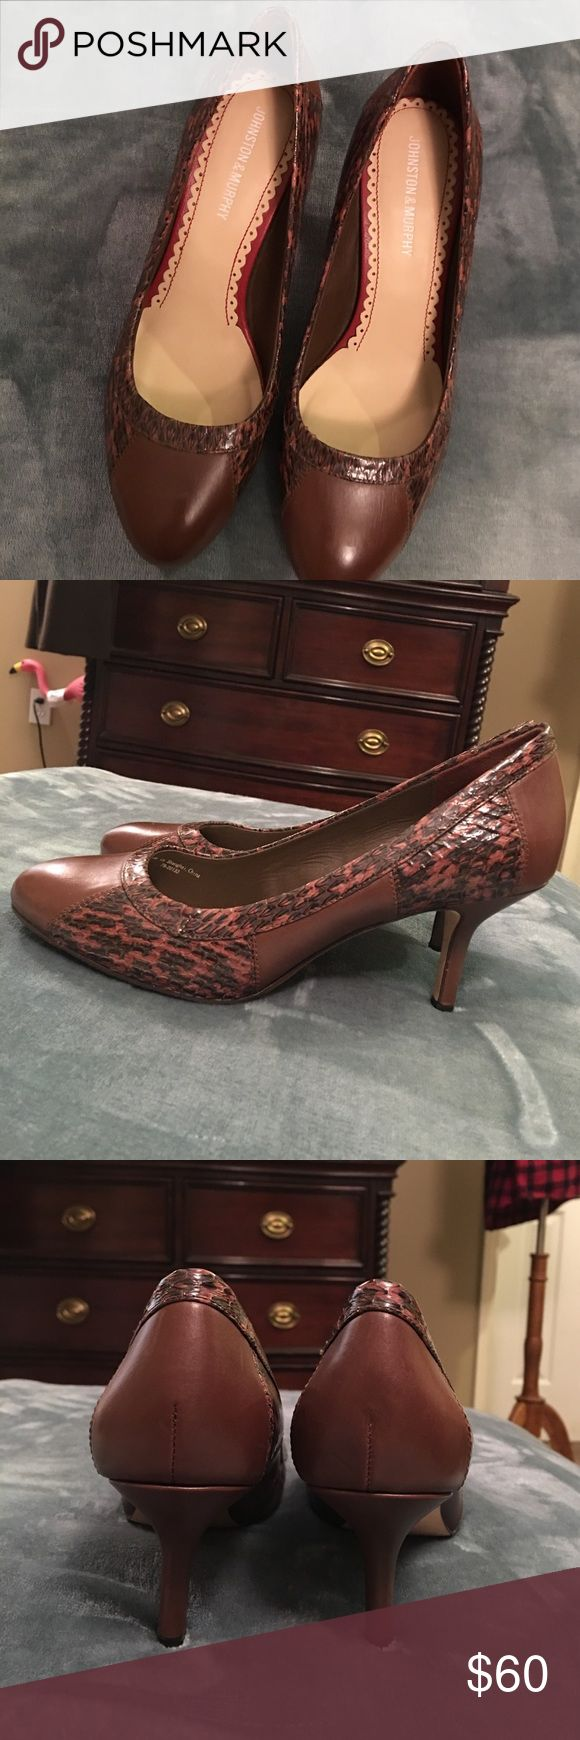 Johnston and Murphy Heels Worn once! Fantastic condition. Real leather. Johnston & Murphy Shoes Heels